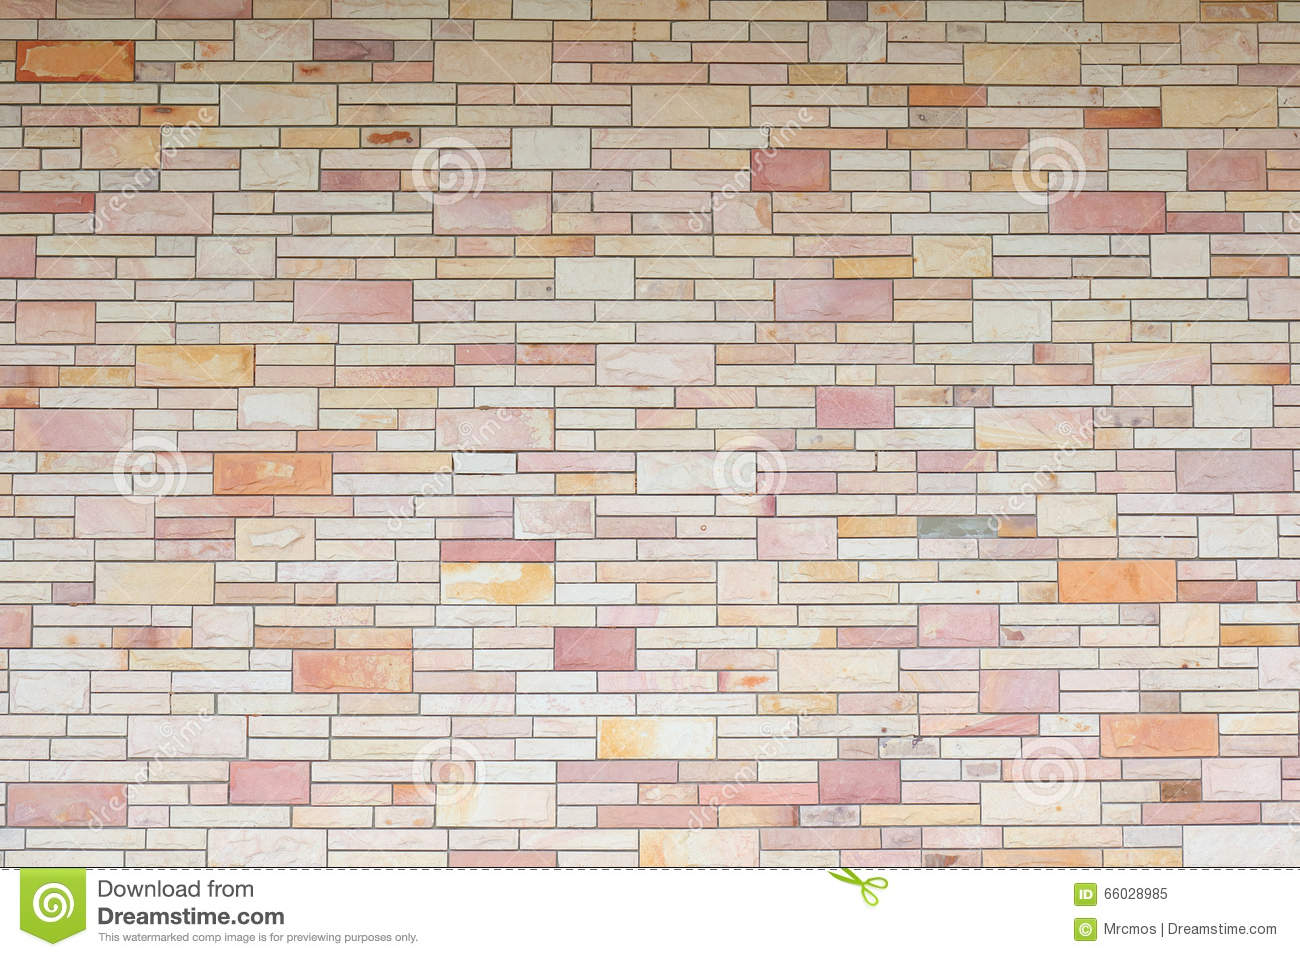 Exterior new brick wall textured wall background stock for Exterior background